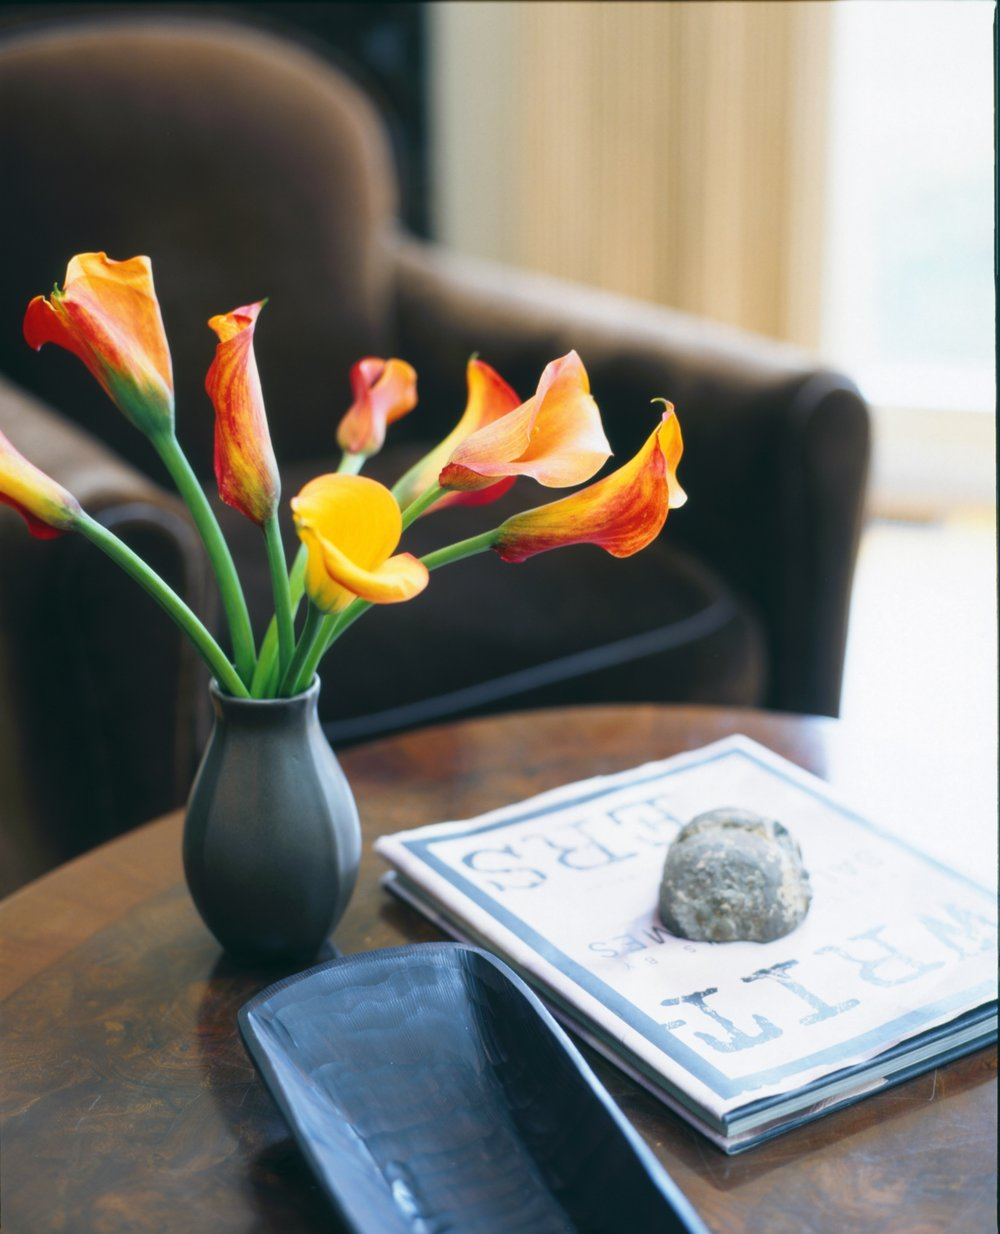 Flower vase with calla